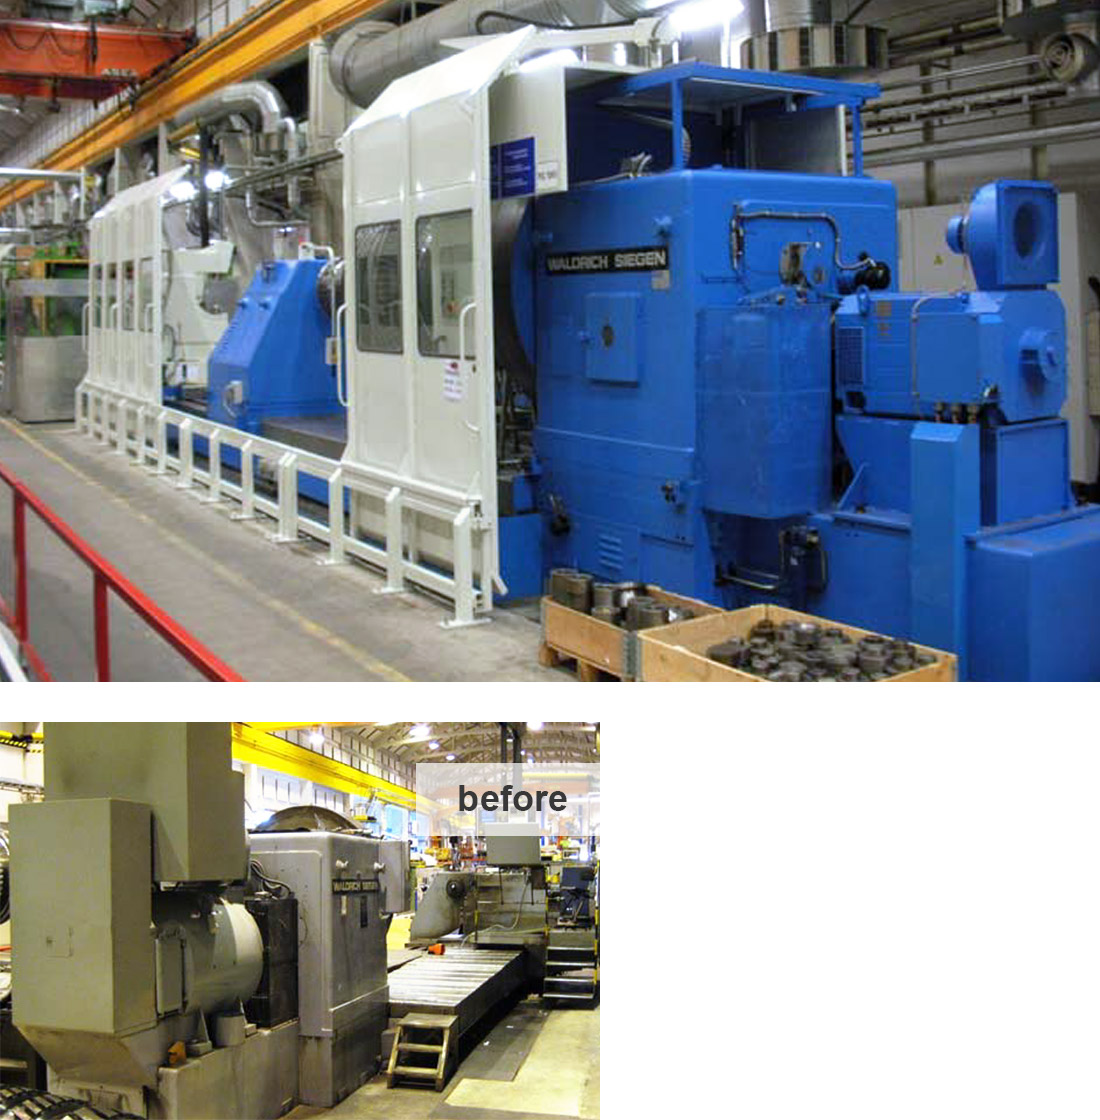 EDM Technik, Machine tool overhaul, Dörries machine tool production, Remanufacturing services